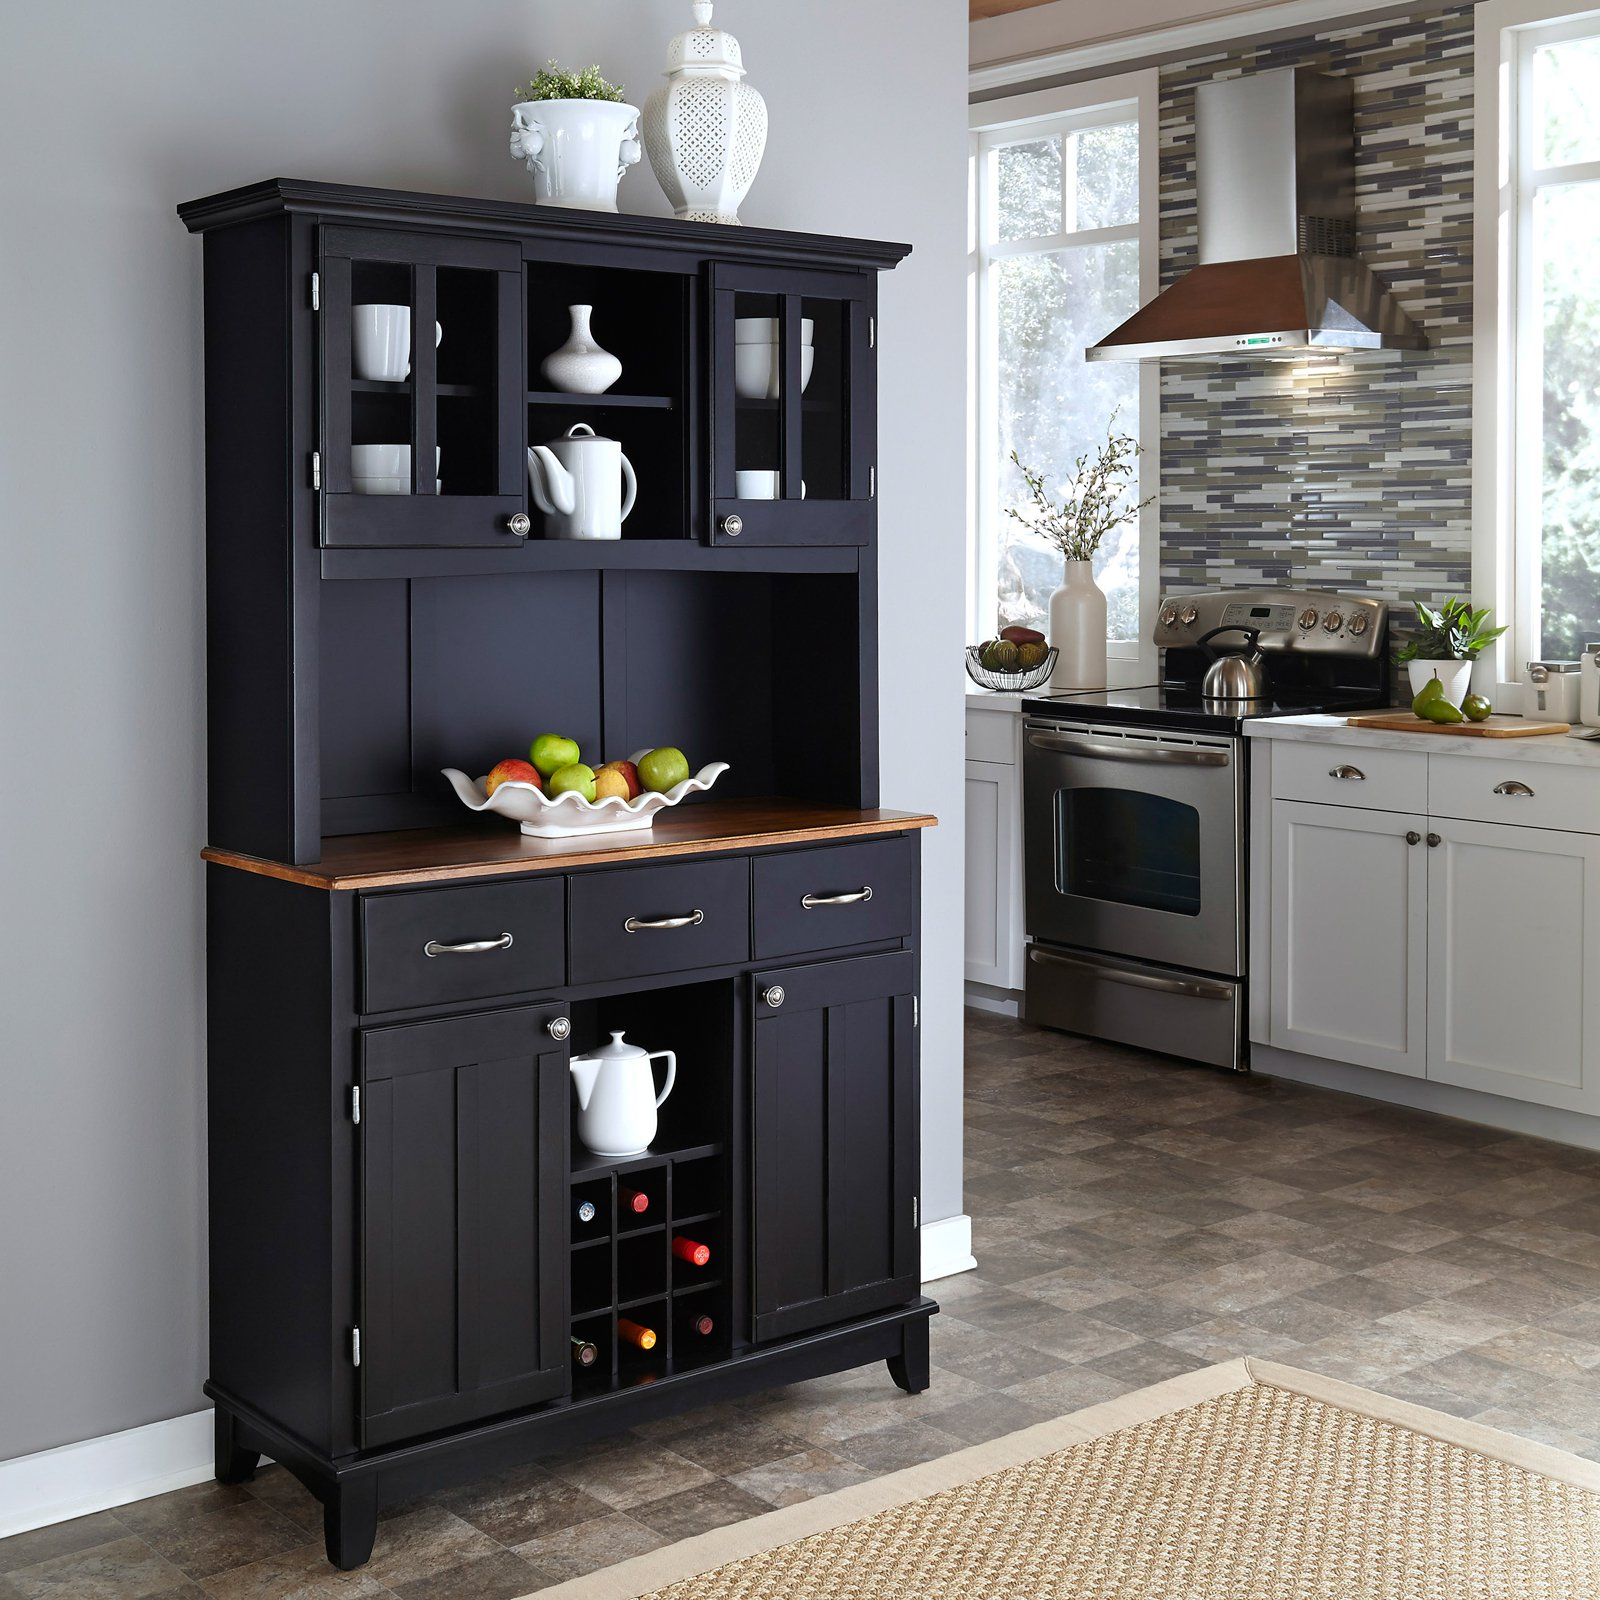 Wooden bakers rack ideas homesfeed for Kitchen set natural